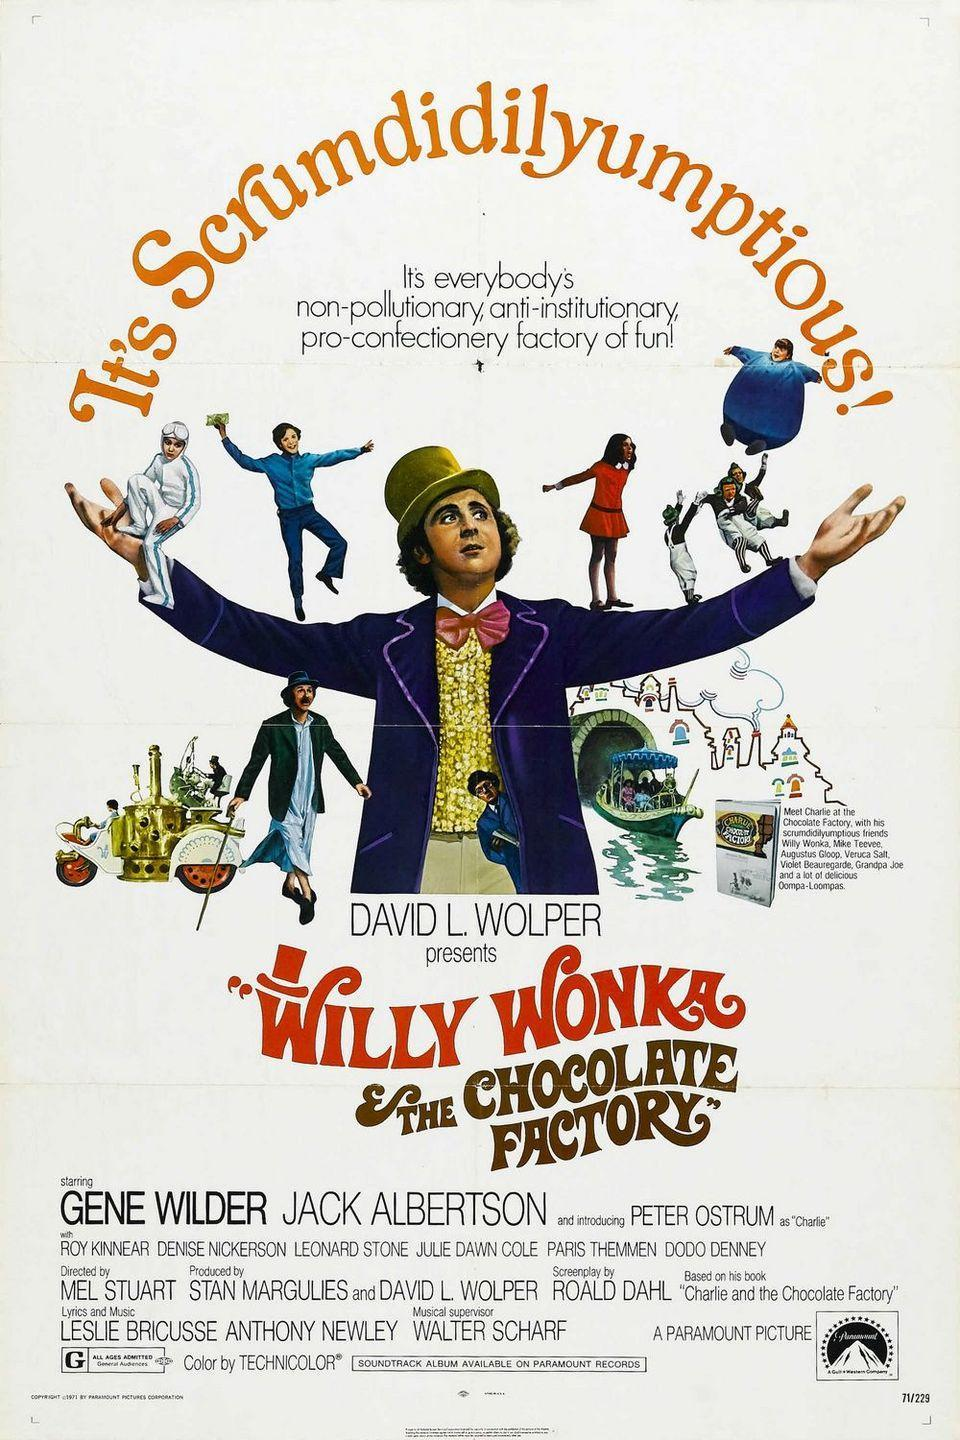 """<p>While it's not typically considered a """"musical,"""" Gene Wilder's kooky candy inventor is one of the most beloved characters of all time and technically... there<em> is</em> music. Willy Wonka is a movie that parents share with their kids and it keeps getting passed down from generation to generation. It's hard not to get choked up whenever """"Pure Imagination"""" starts or get immediately brought back to your childhood when you see an Oompa Loompa on-screen. Even if it is a bit... dark.</p><p><a class=""""link rapid-noclick-resp"""" href=""""https://www.amazon.com/Willy-Wonka-Chocolate-Factory-Wilder/dp/B002YNGNG6/ref=sr_1_1?tag=syn-yahoo-20&ascsubtag=%5Bartid%7C10072.g.27734413%5Bsrc%7Cyahoo-us"""" rel=""""nofollow noopener"""" target=""""_blank"""" data-ylk=""""slk:WATCH NOW"""">WATCH NOW</a></p>"""